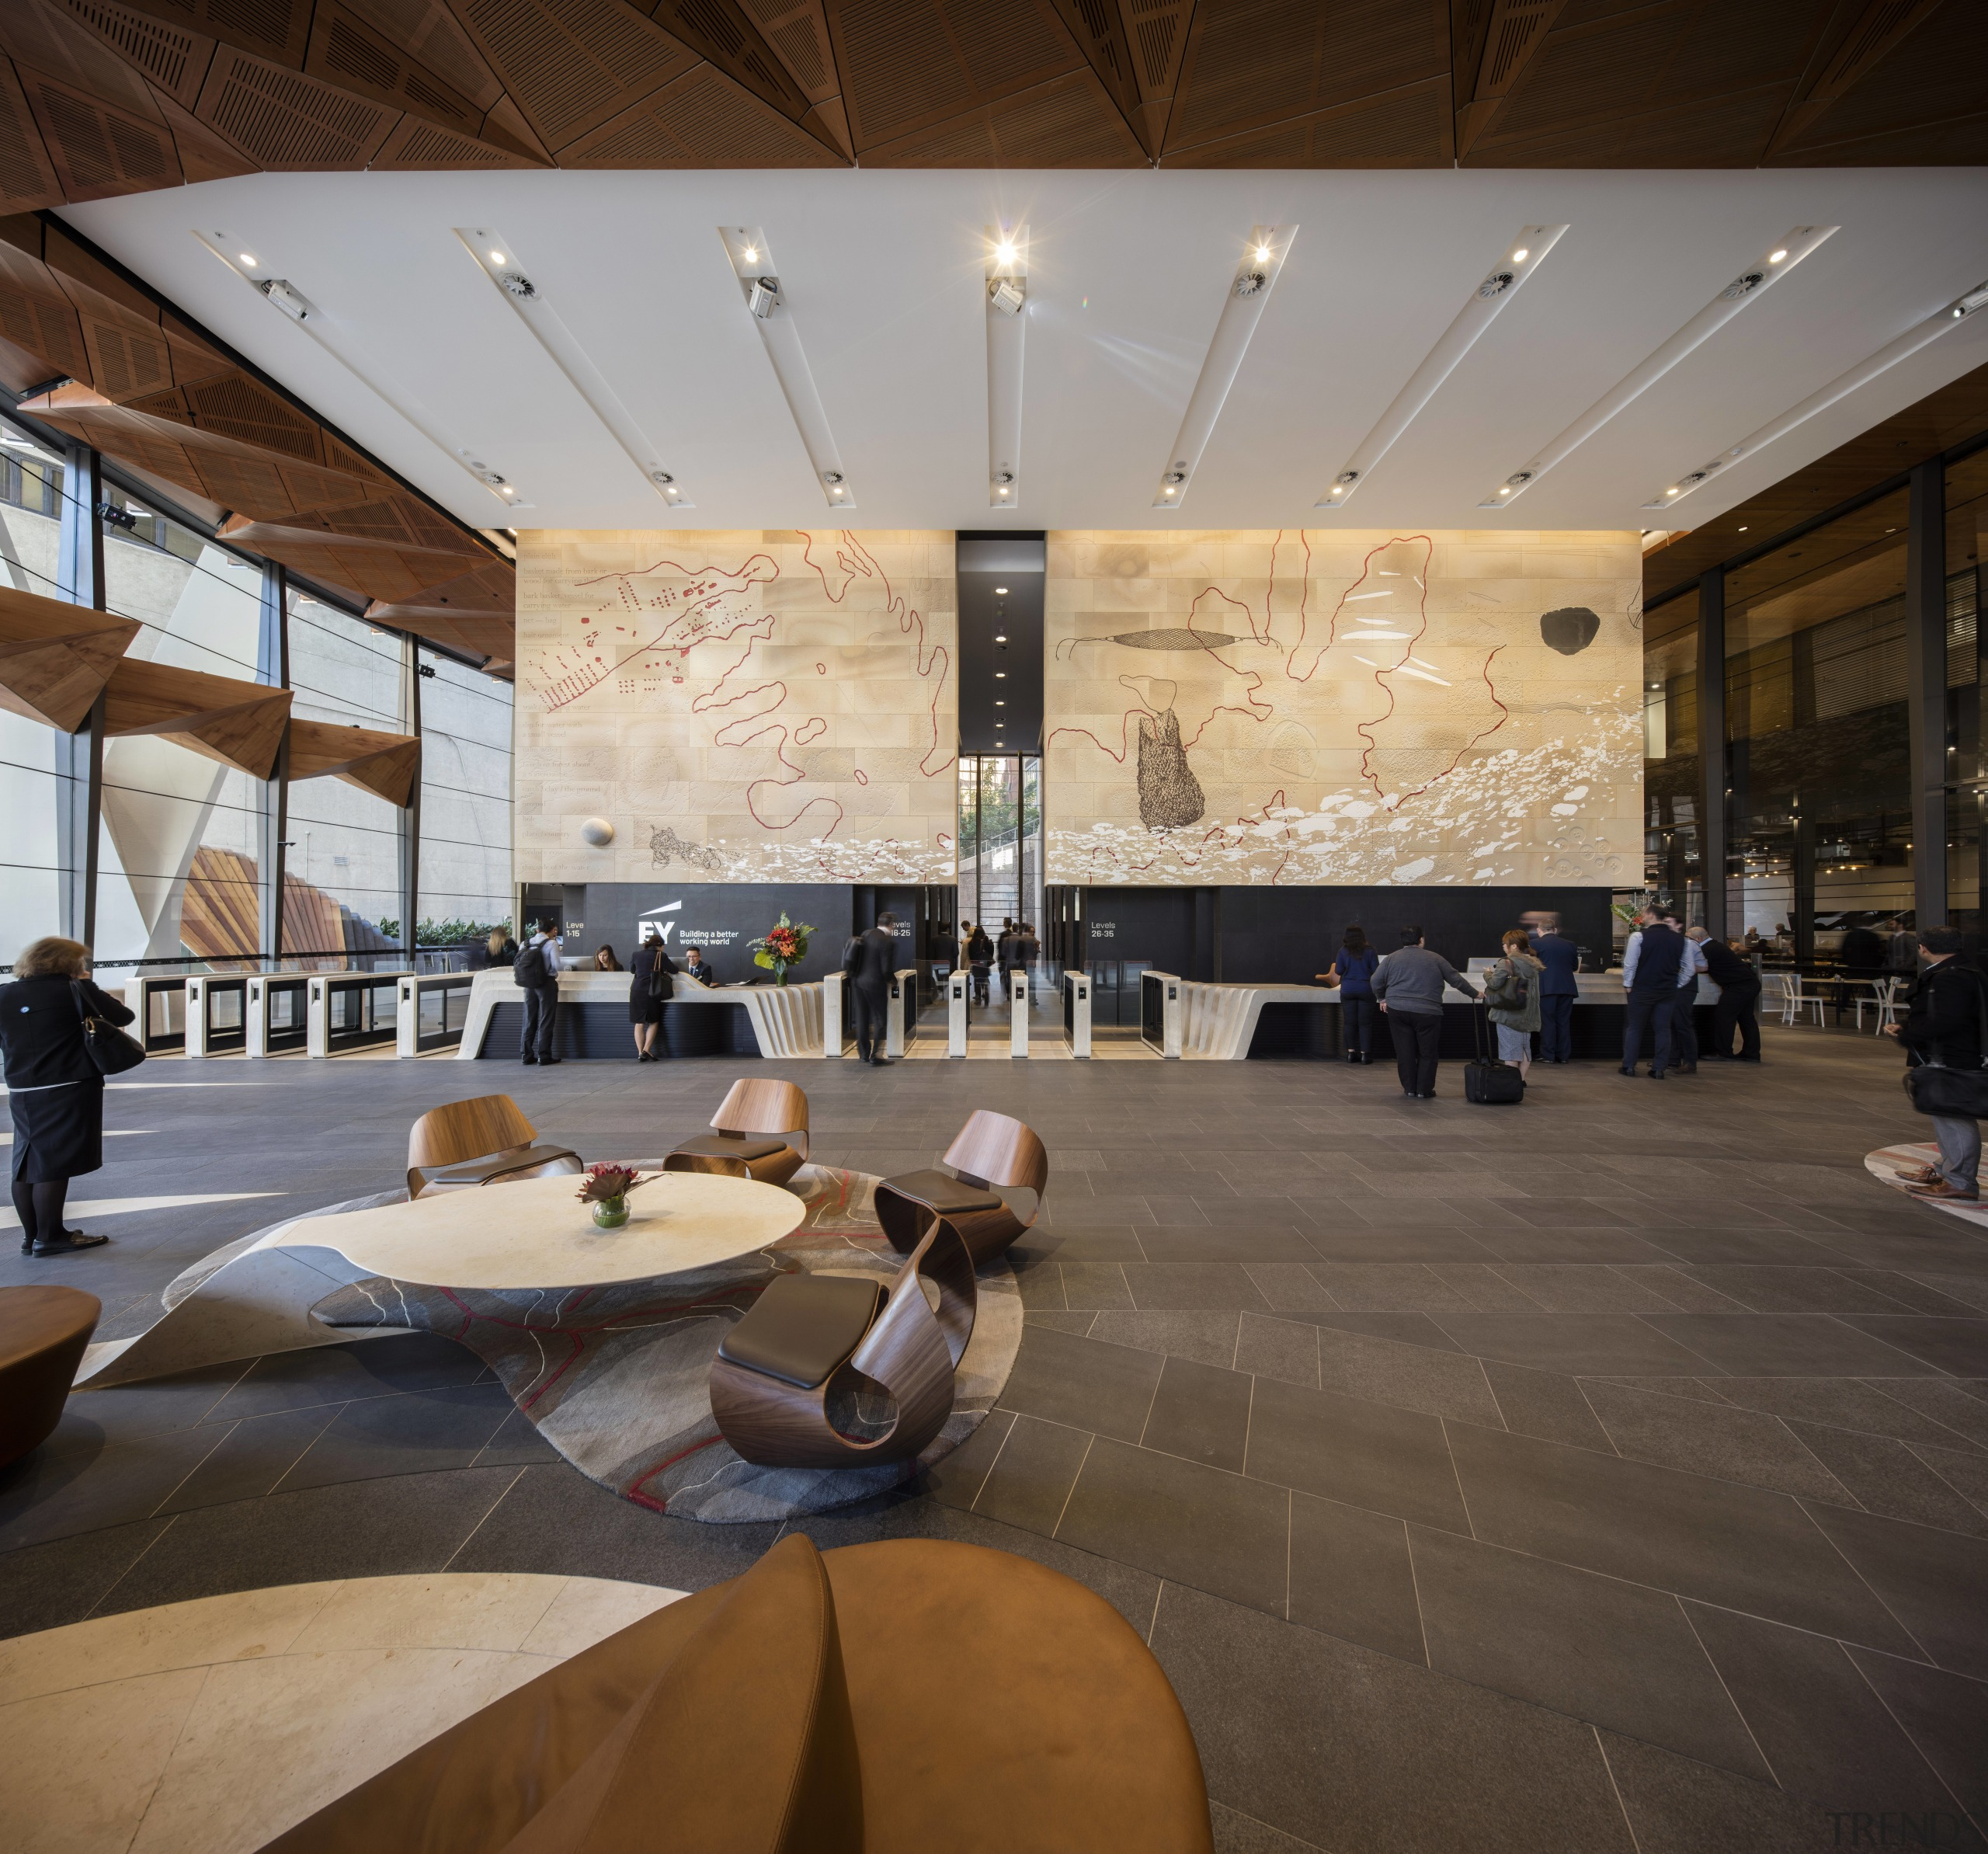 A mural on sandstone by artist Judy Watson architecture, ceiling, flooring, furniture, interior design, lobby, restaurant, table, brown, gray